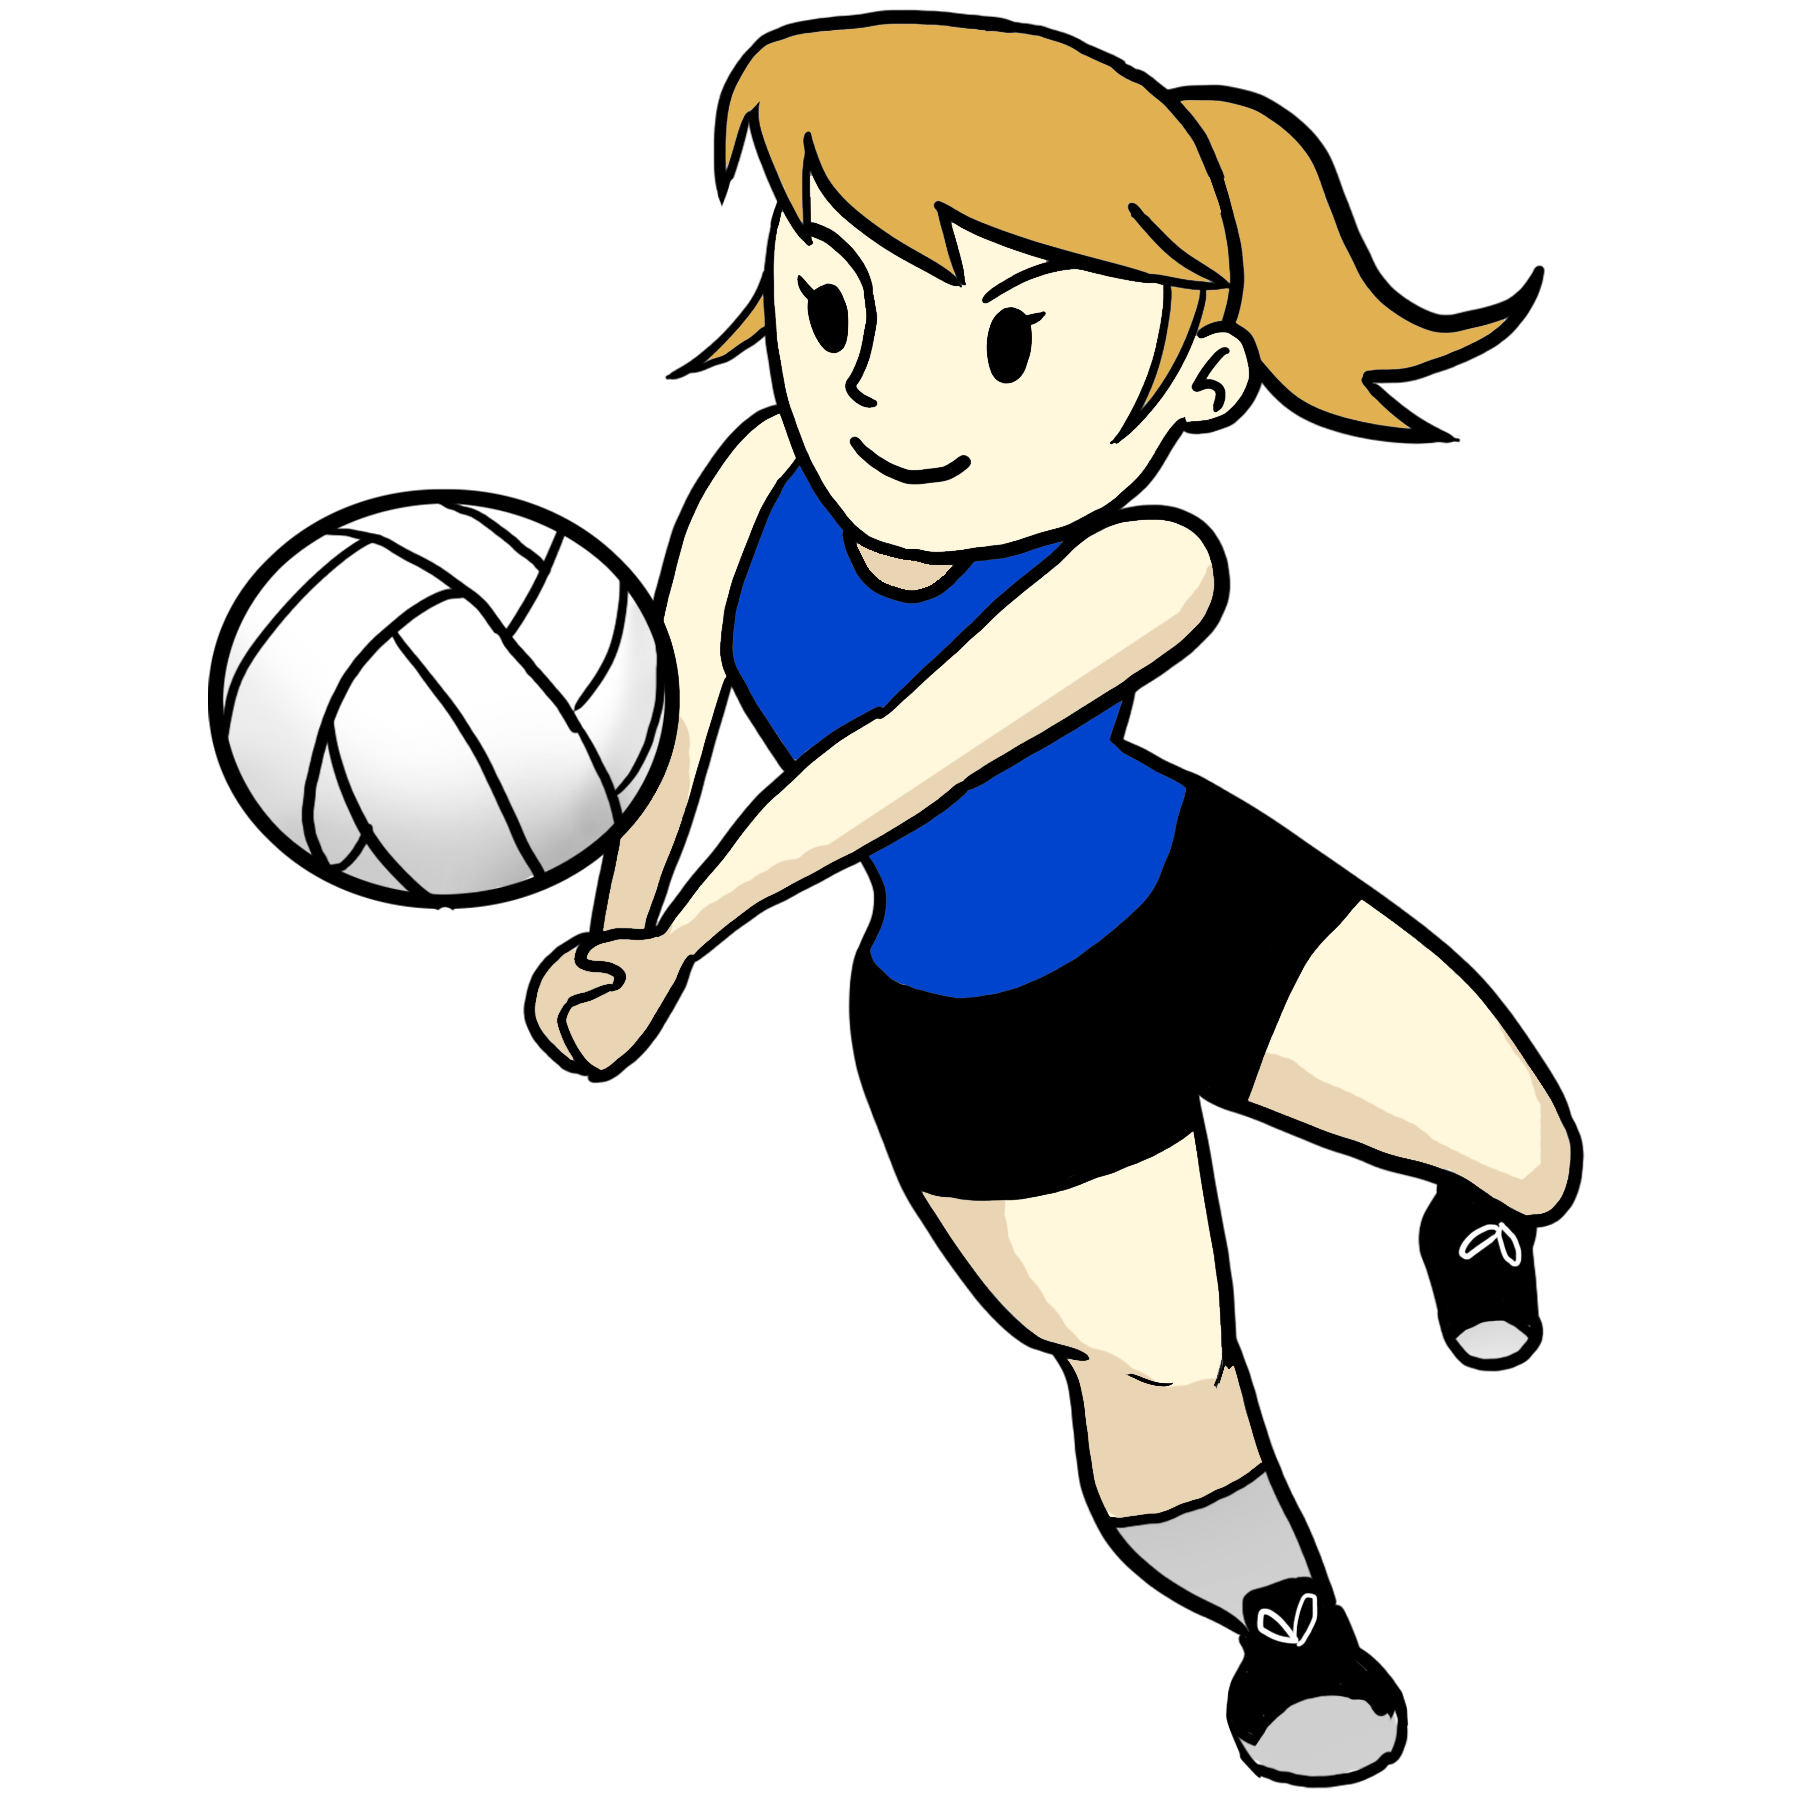 Cartoon Volleyball Pictures - Cliparts.co